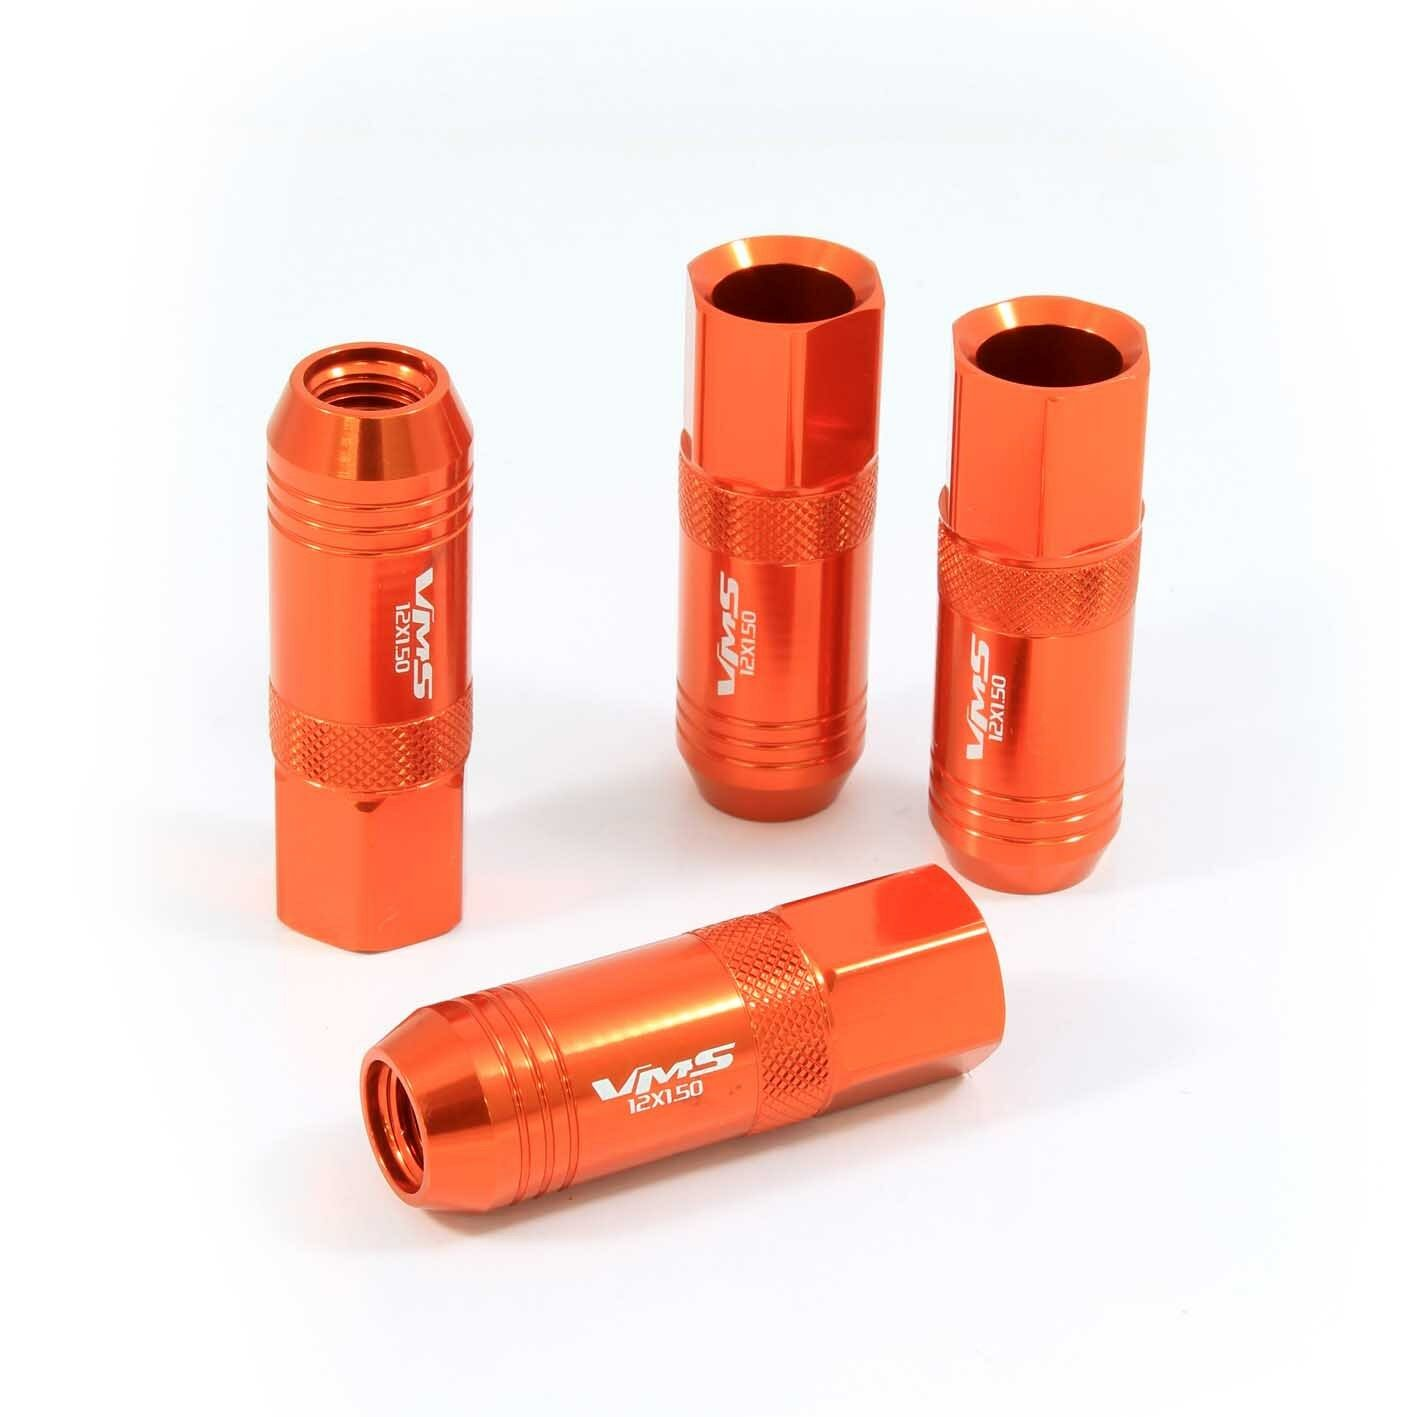 vms 16 orange 60mm aluminum extended tuner lug nuts lugs for wheels rims 12x1 5